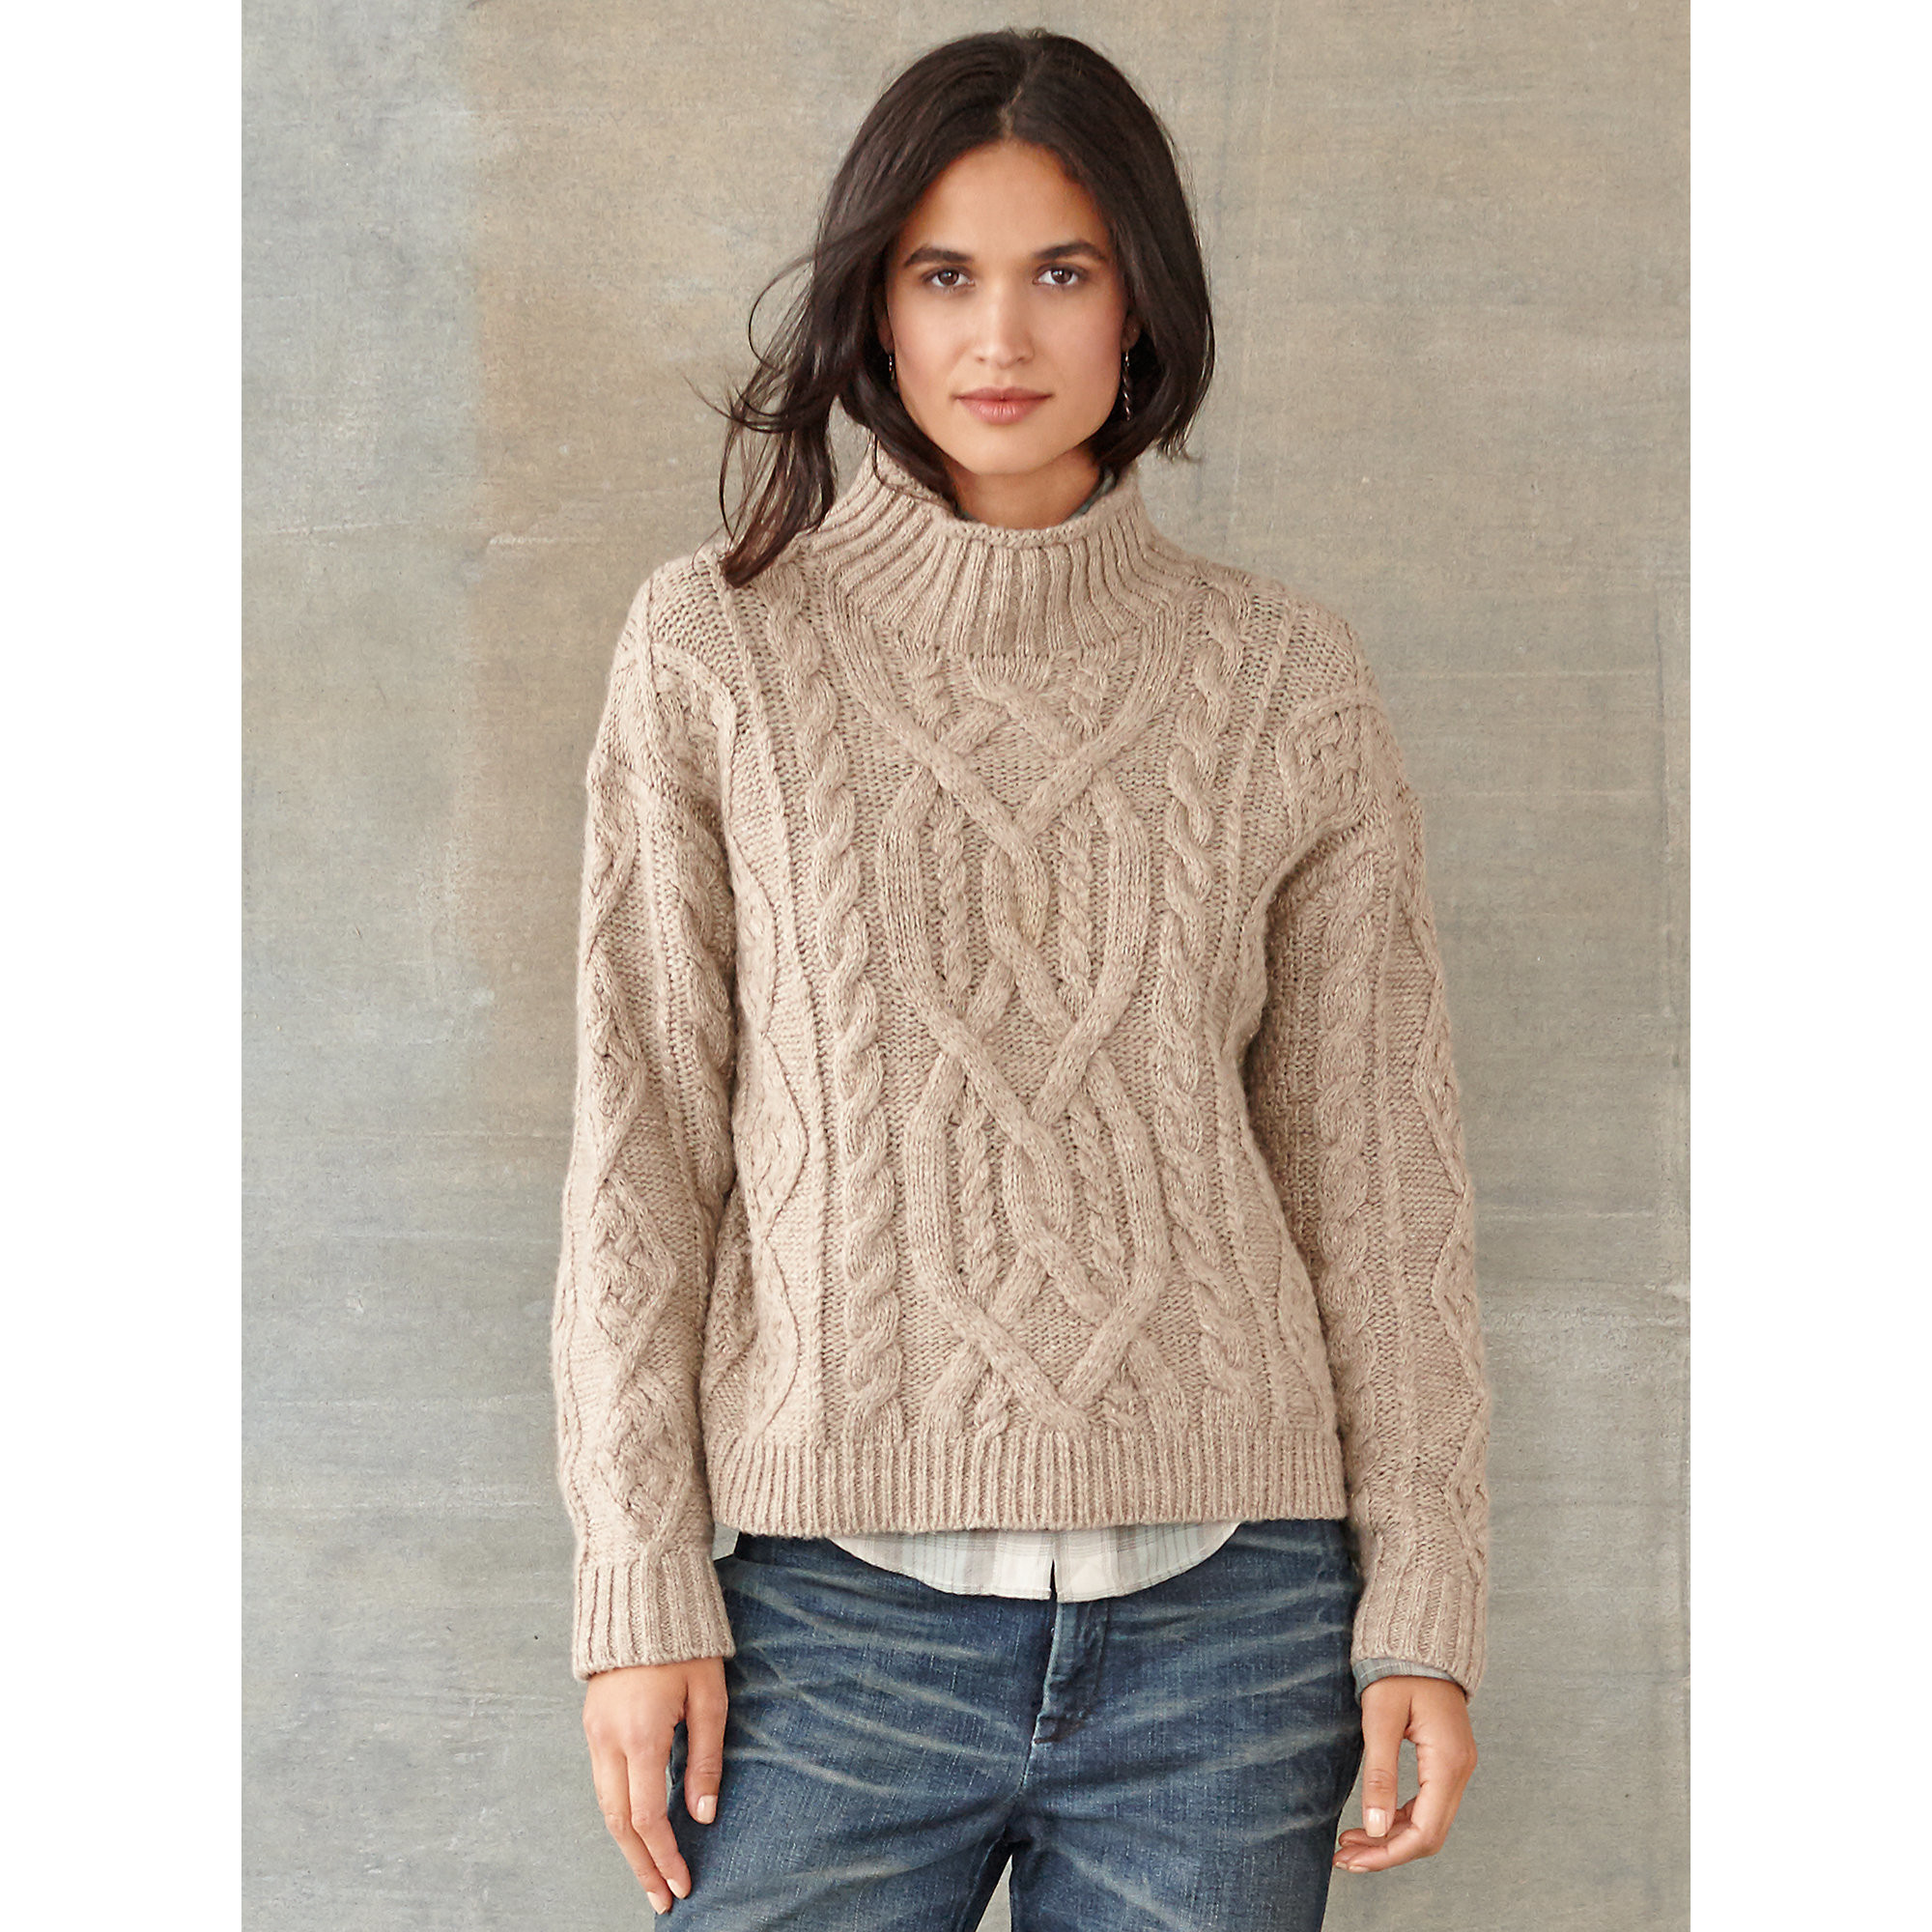 Womens Cable Knit Sweater Elegant Rrl Tessa Cable Knit Wool Sweater In Natural Of Innovative 44 Pics Womens Cable Knit Sweater